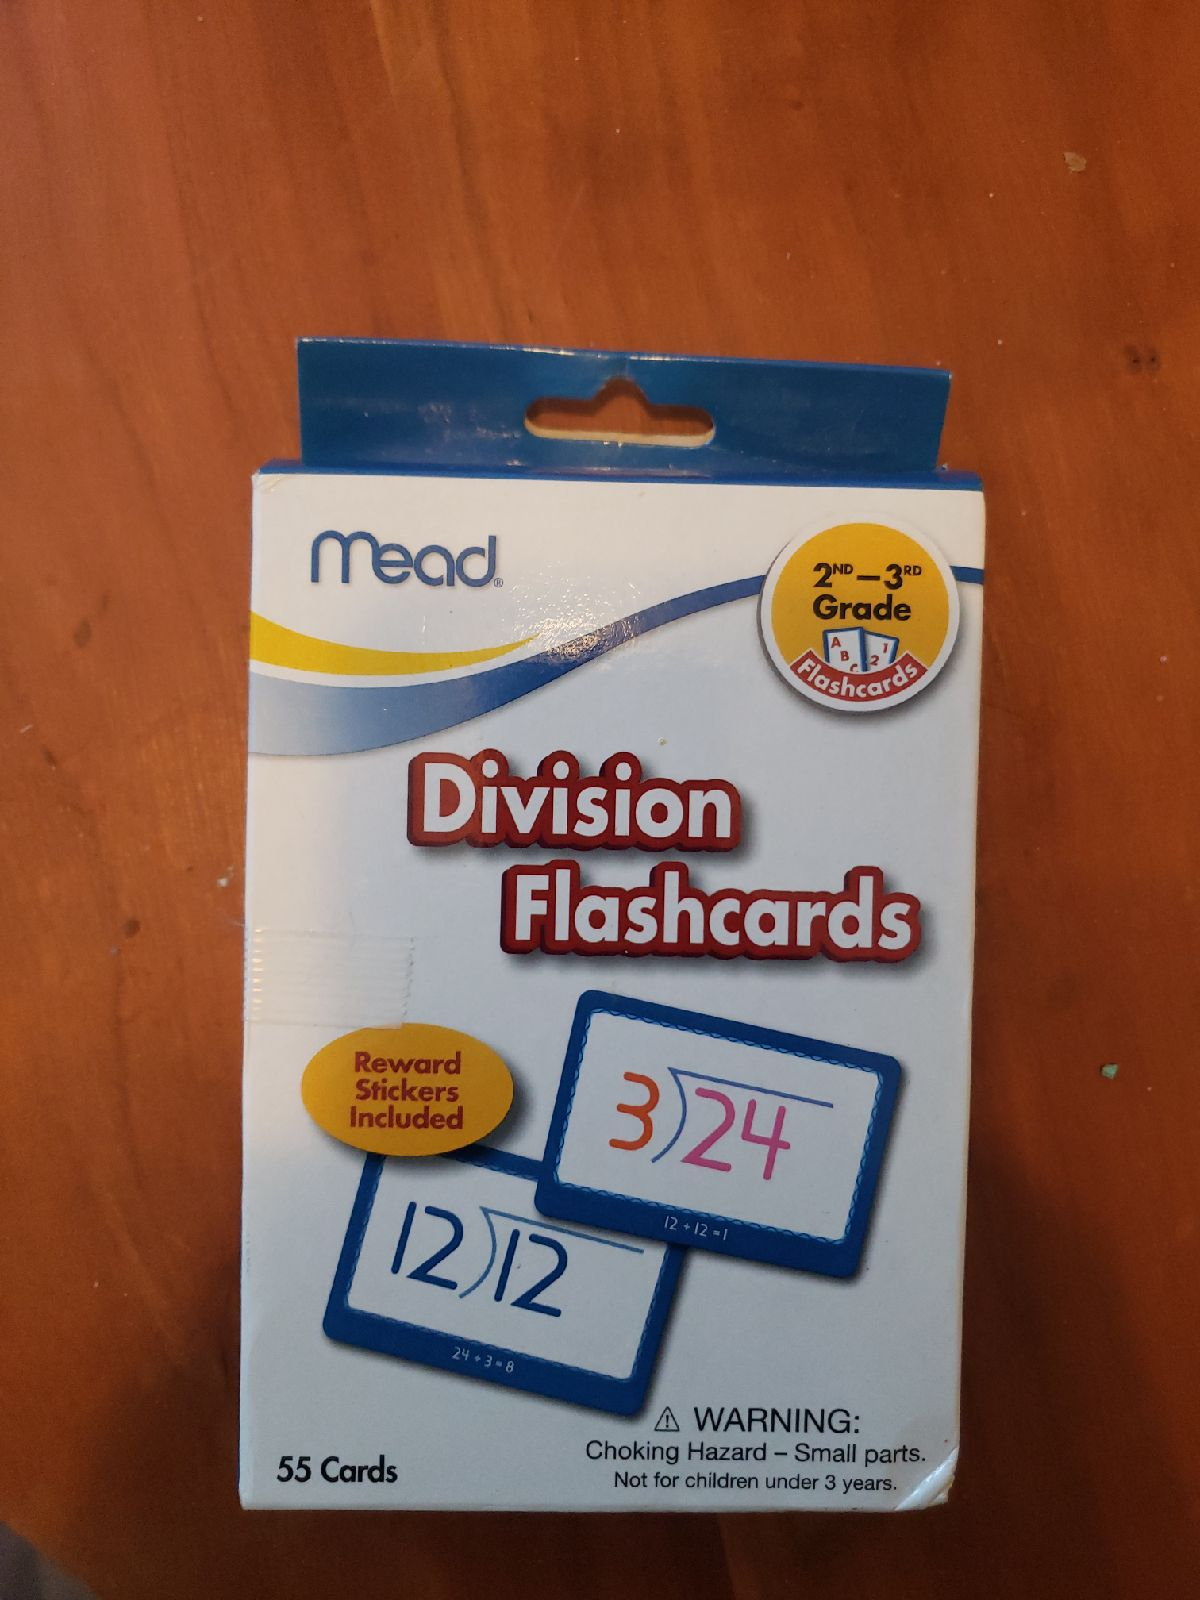 Mead Division Flashcards